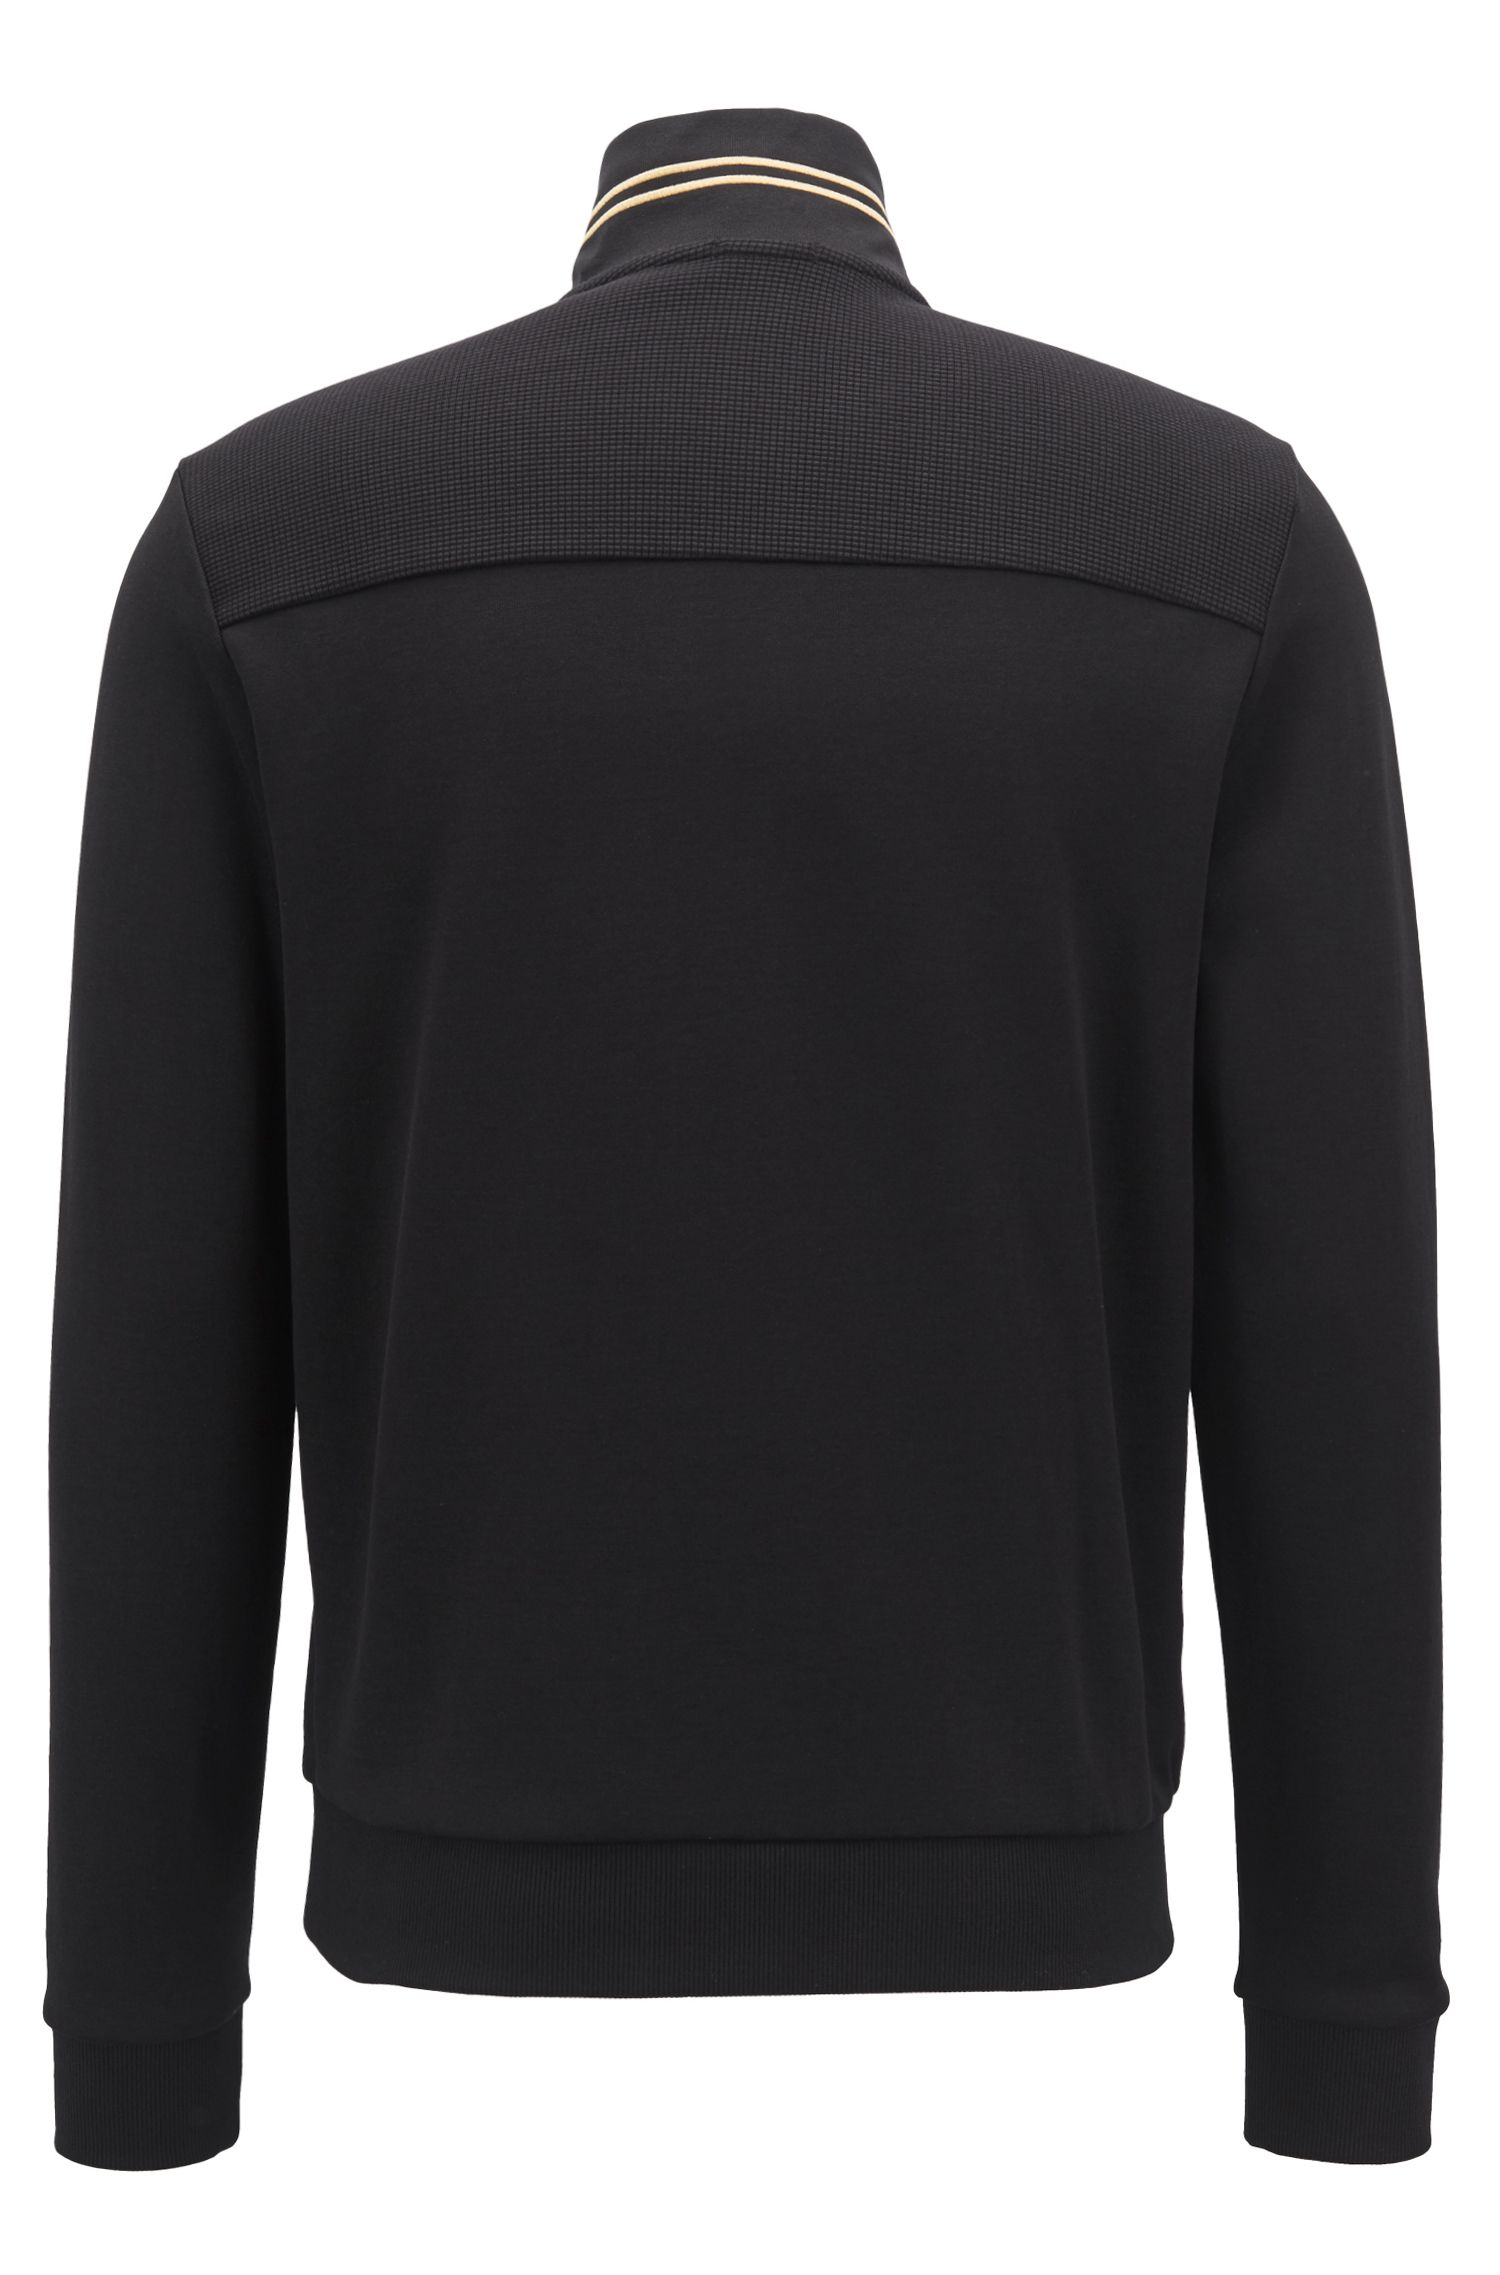 Zip-neck sweatshirt with striped artwork and contrast panels, Black